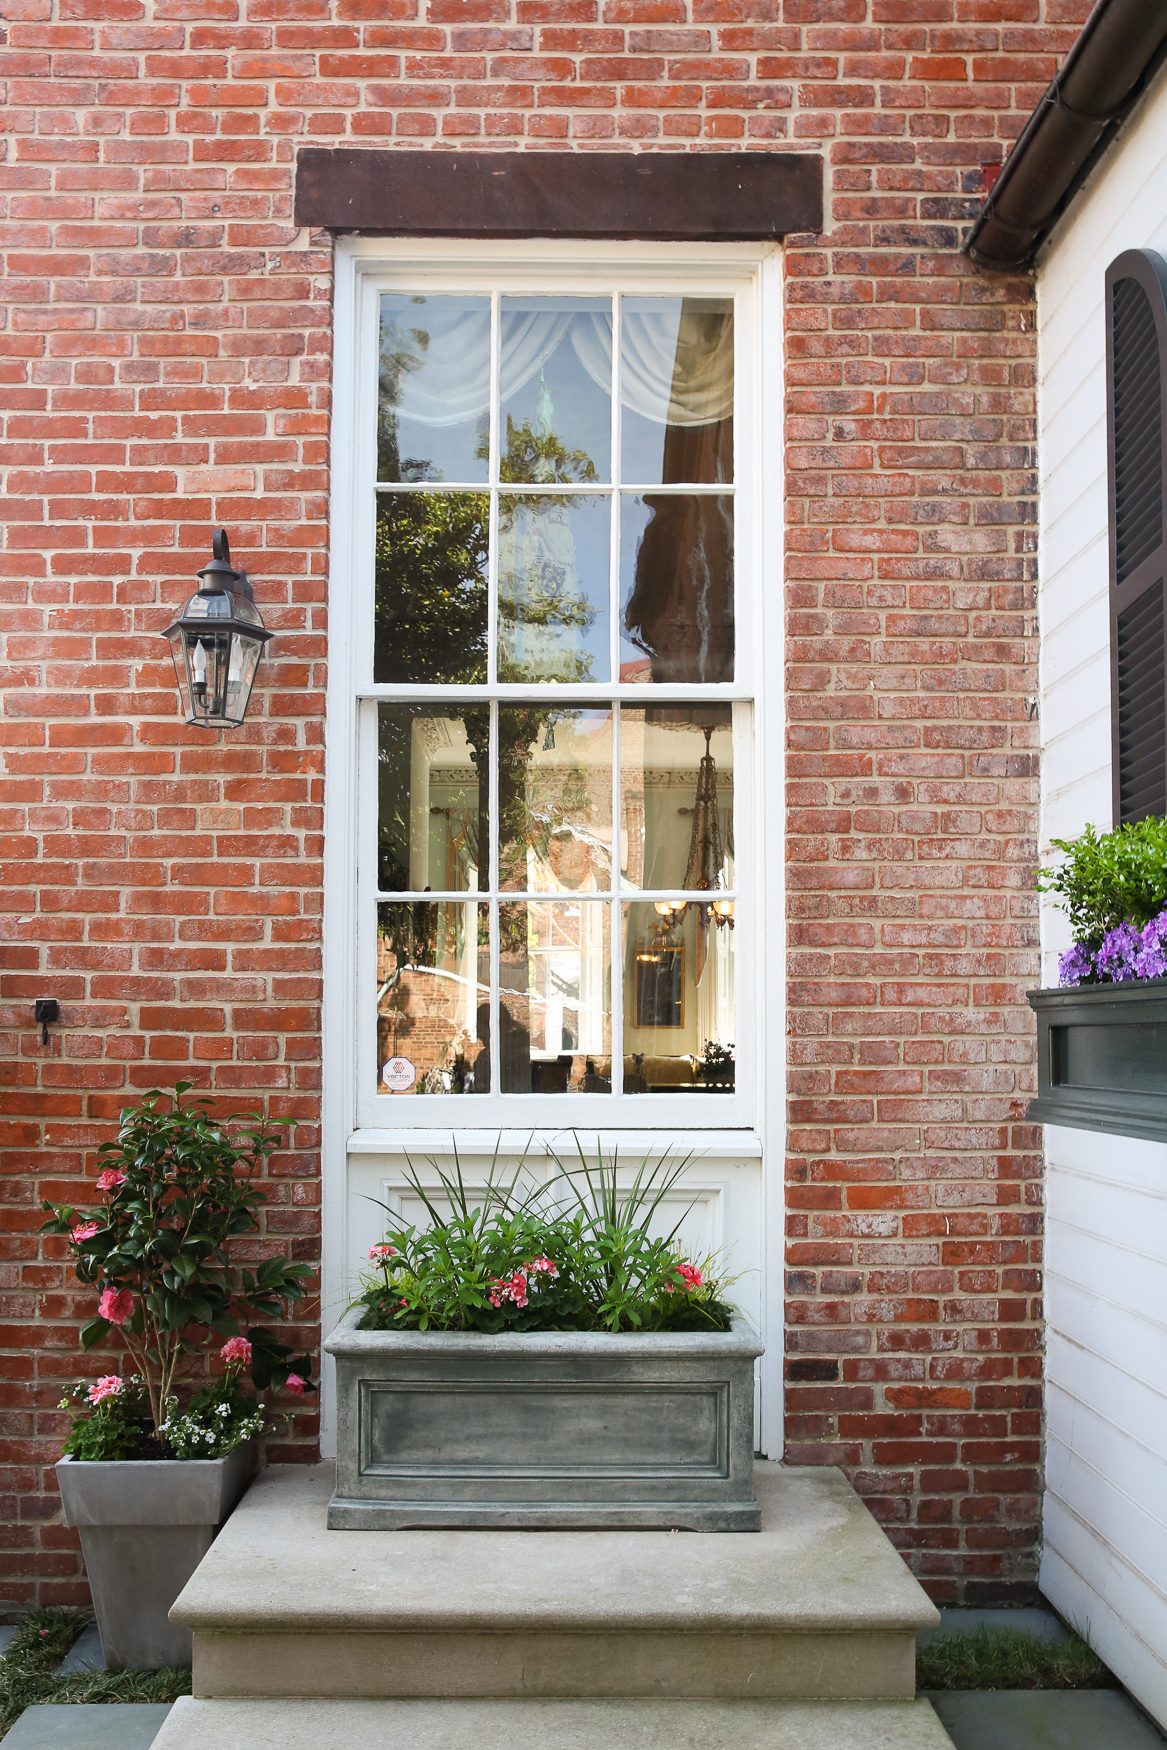 From April 21-28, communities across Virginia will be allowing visitors into more than 250 gorgeous gardens for the annual Historic Garden Week. Five homeowners in Old Town Alexandria opened up their homes and gardens for the state-wide event, so here is the best garden-spo we found. (Amanda Andrade-Rhoades/DC Refined)